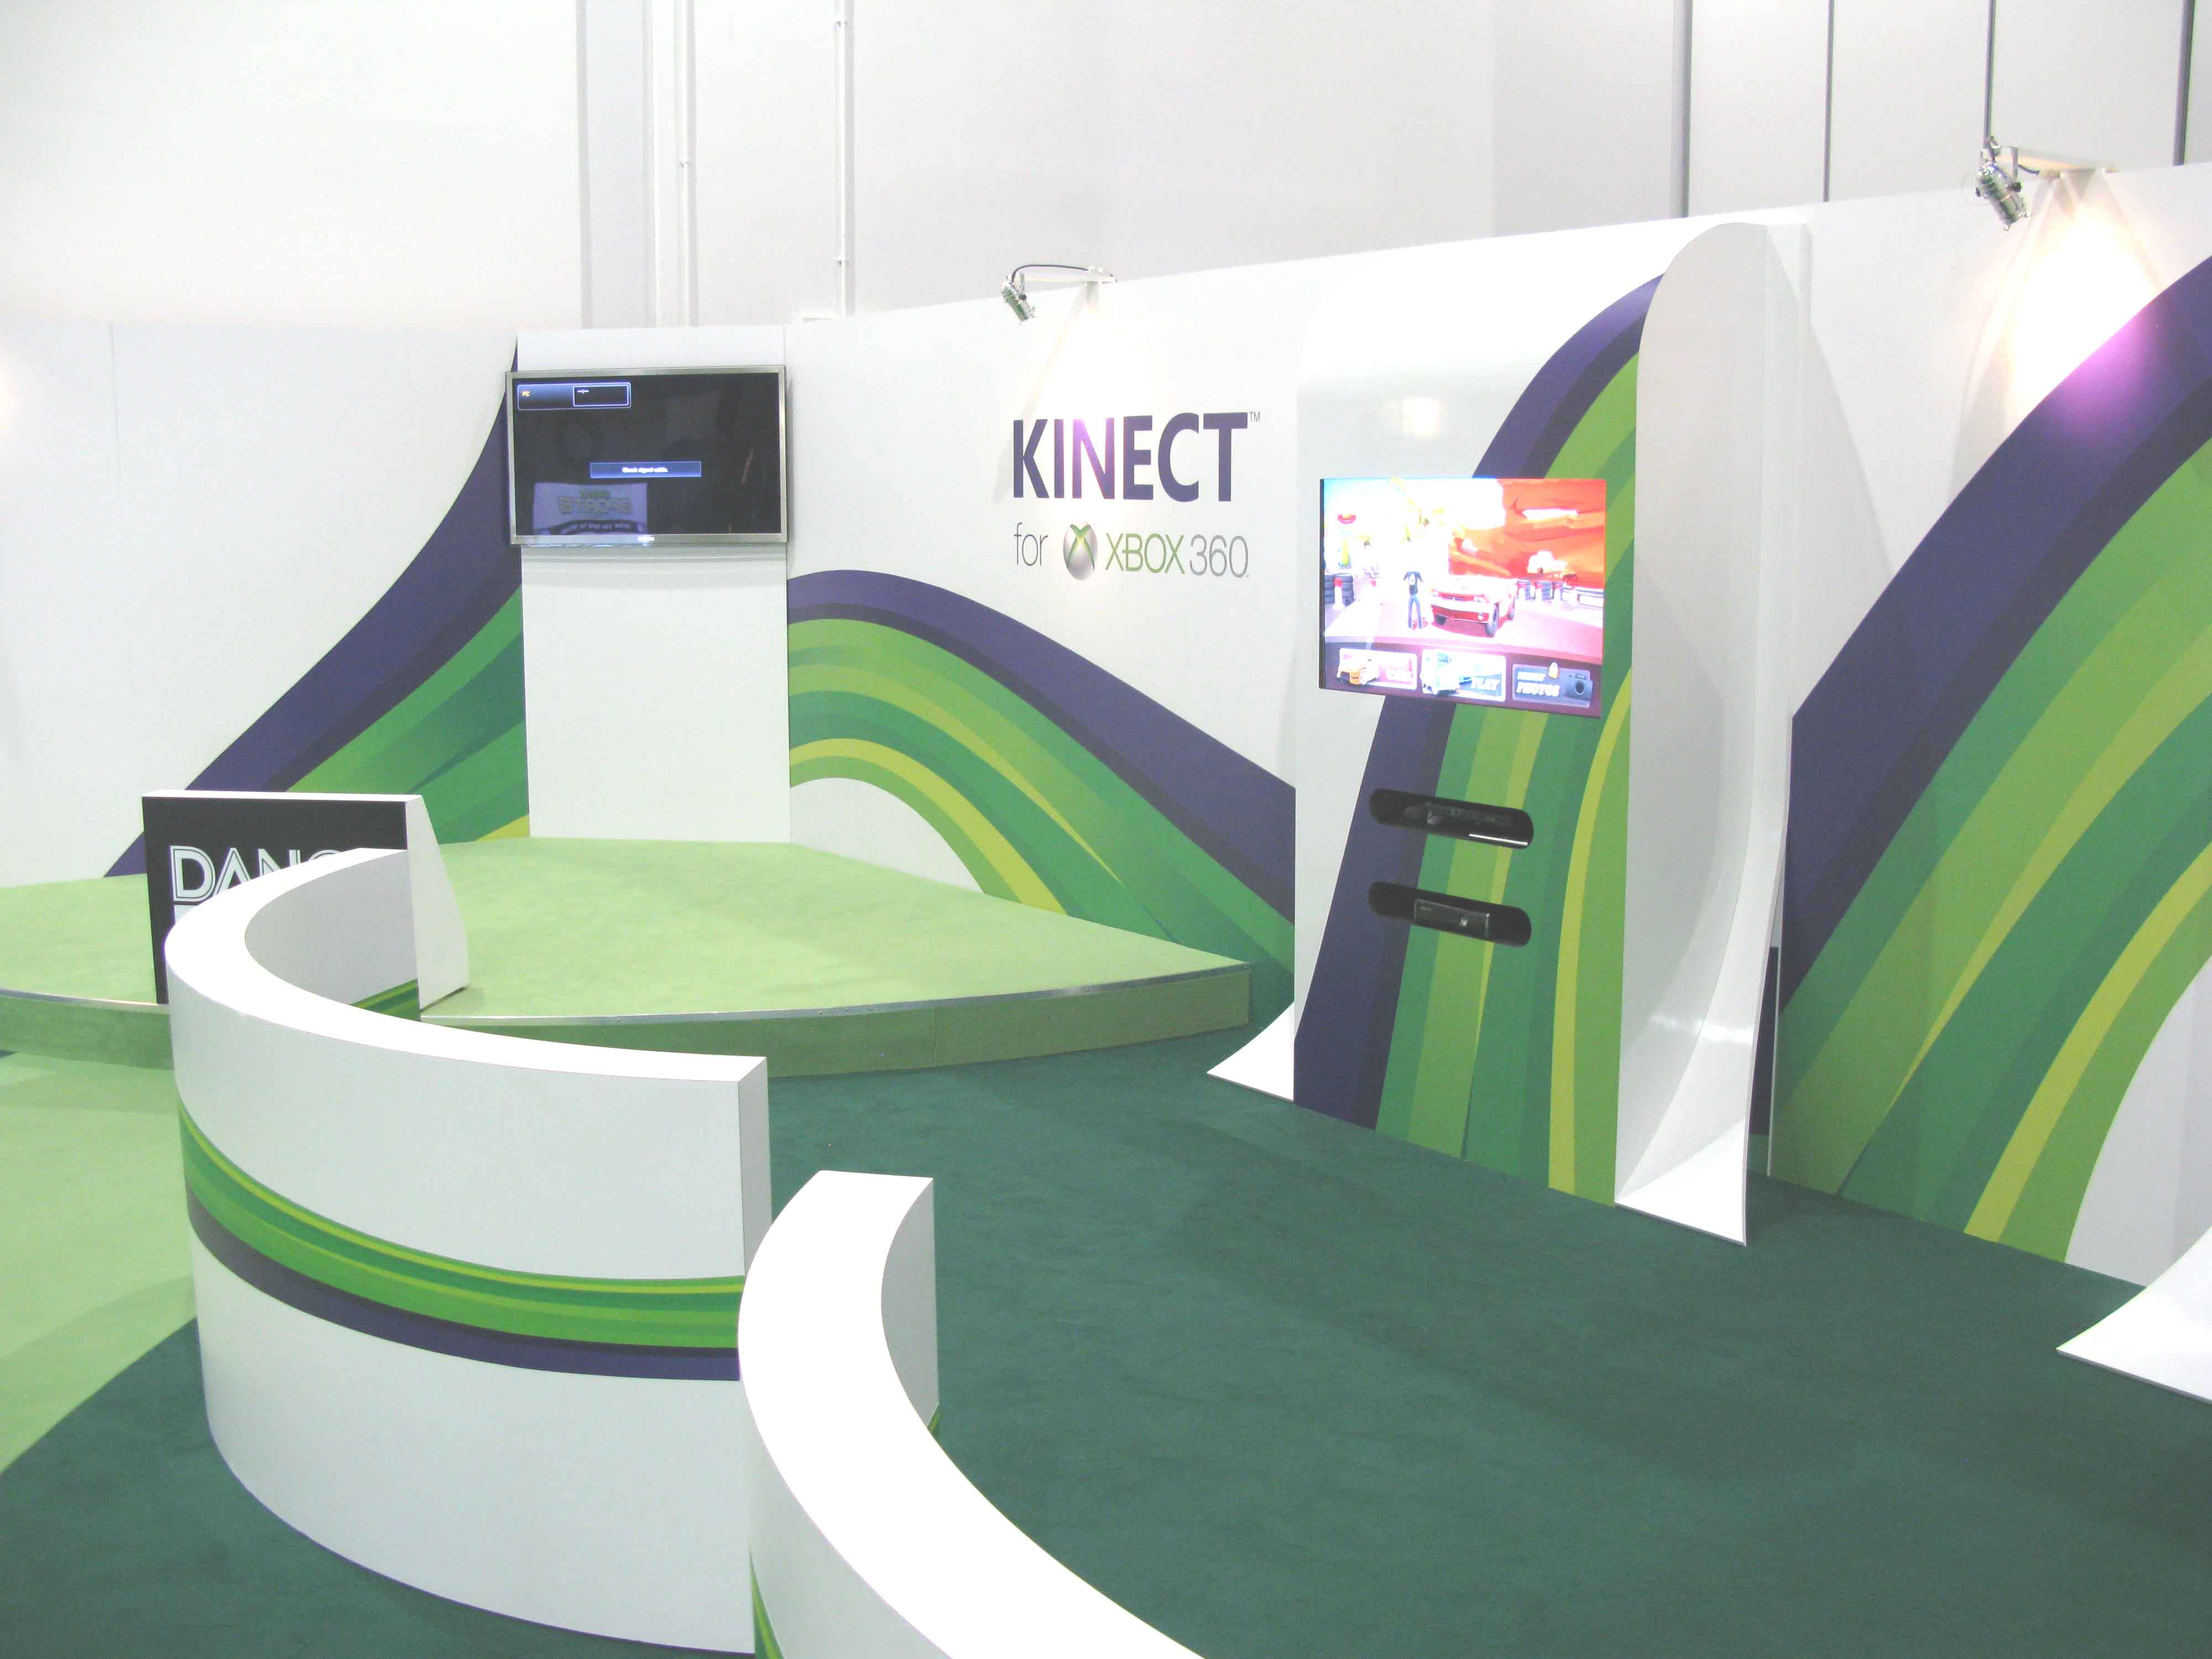 Marketing Exhibition Stand Jobs : Marketing exhibition stand design and build for xbox